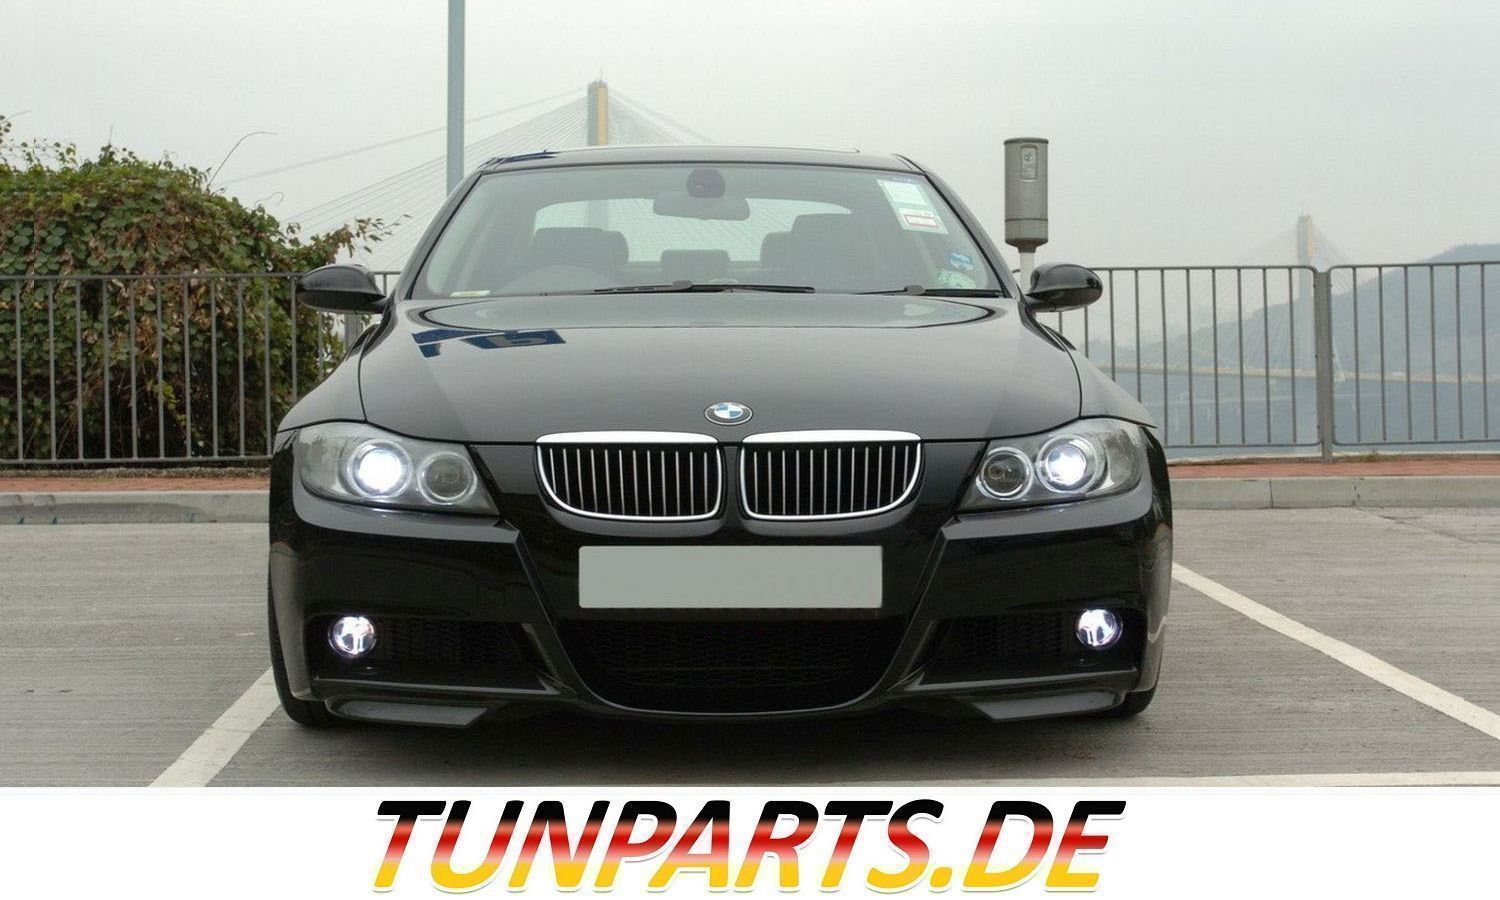 gt splitter flaps f r bmw e90 e91 bei tunparts g nstig. Black Bedroom Furniture Sets. Home Design Ideas